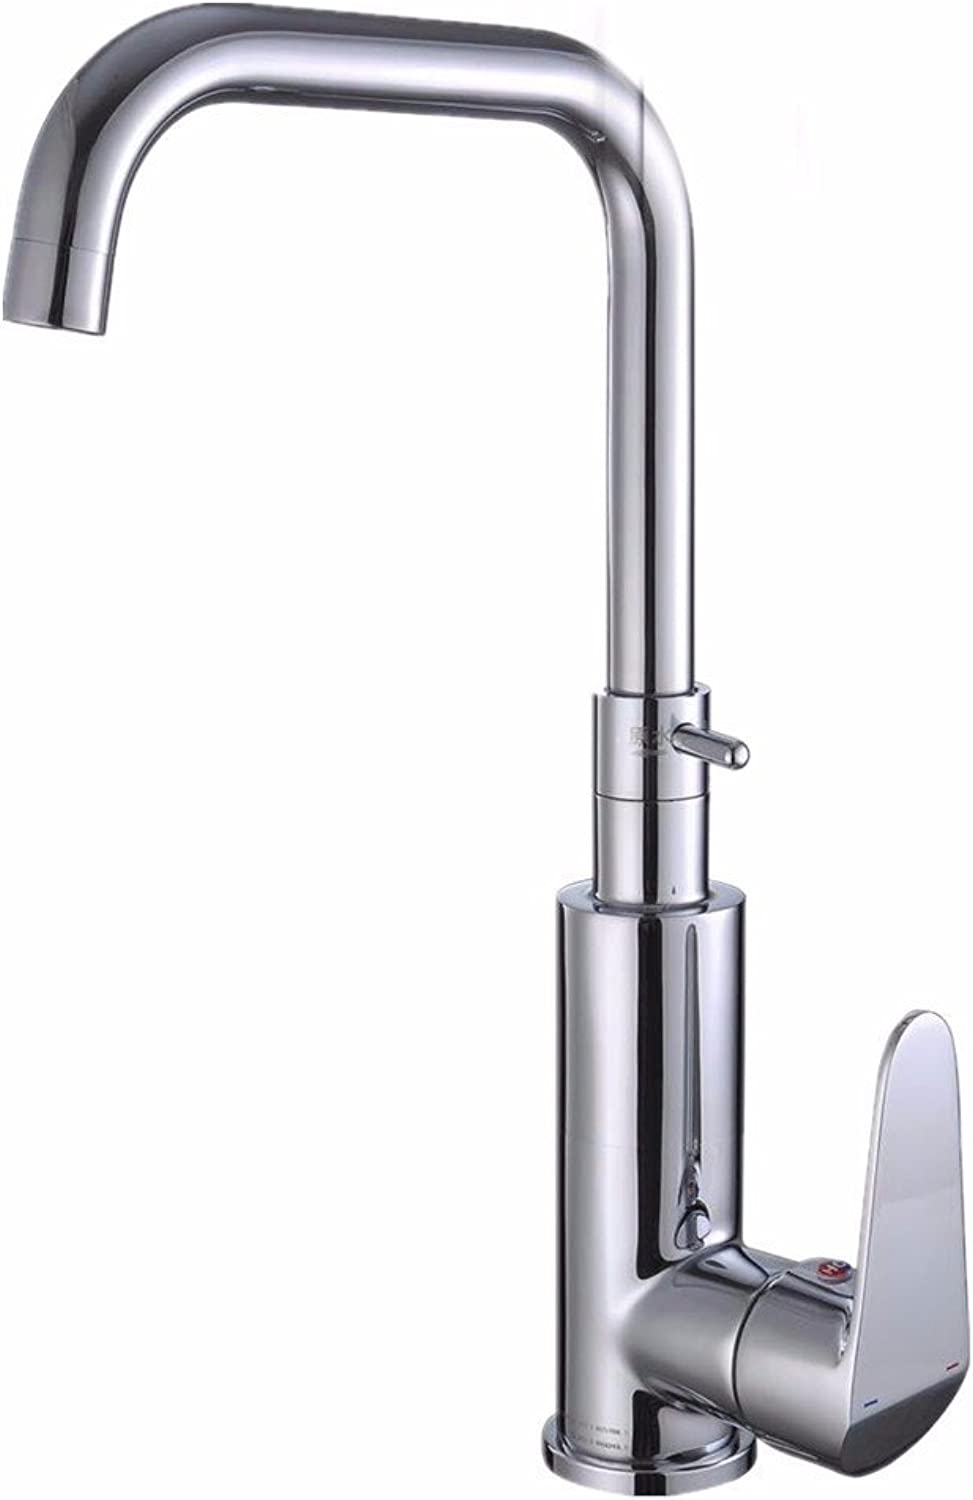 LaLF Kitchen Hot and Cold Kitchen Faucet Single Handle Single Hole Stainless Steel Sink Faucet